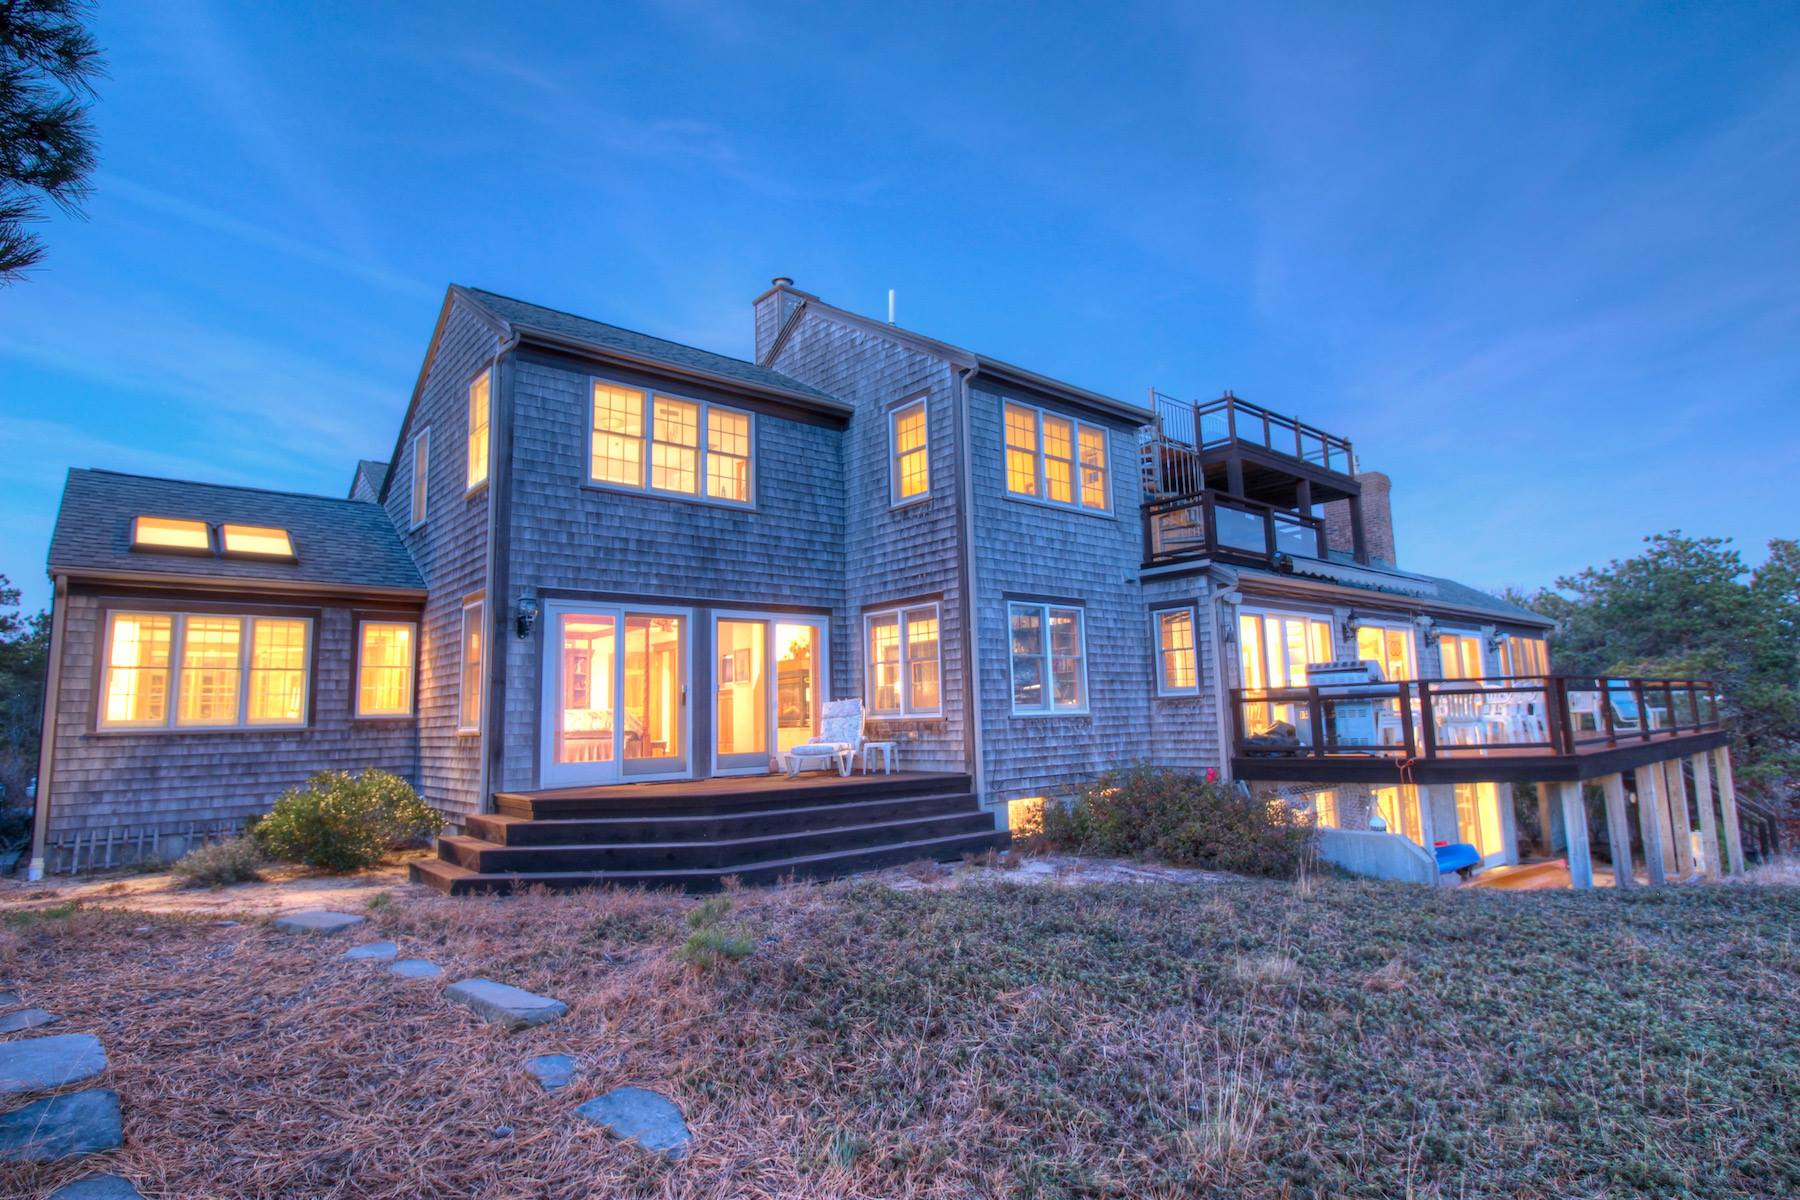 sales property at 615 Chequessett Neck Road, Wellfleet, MA